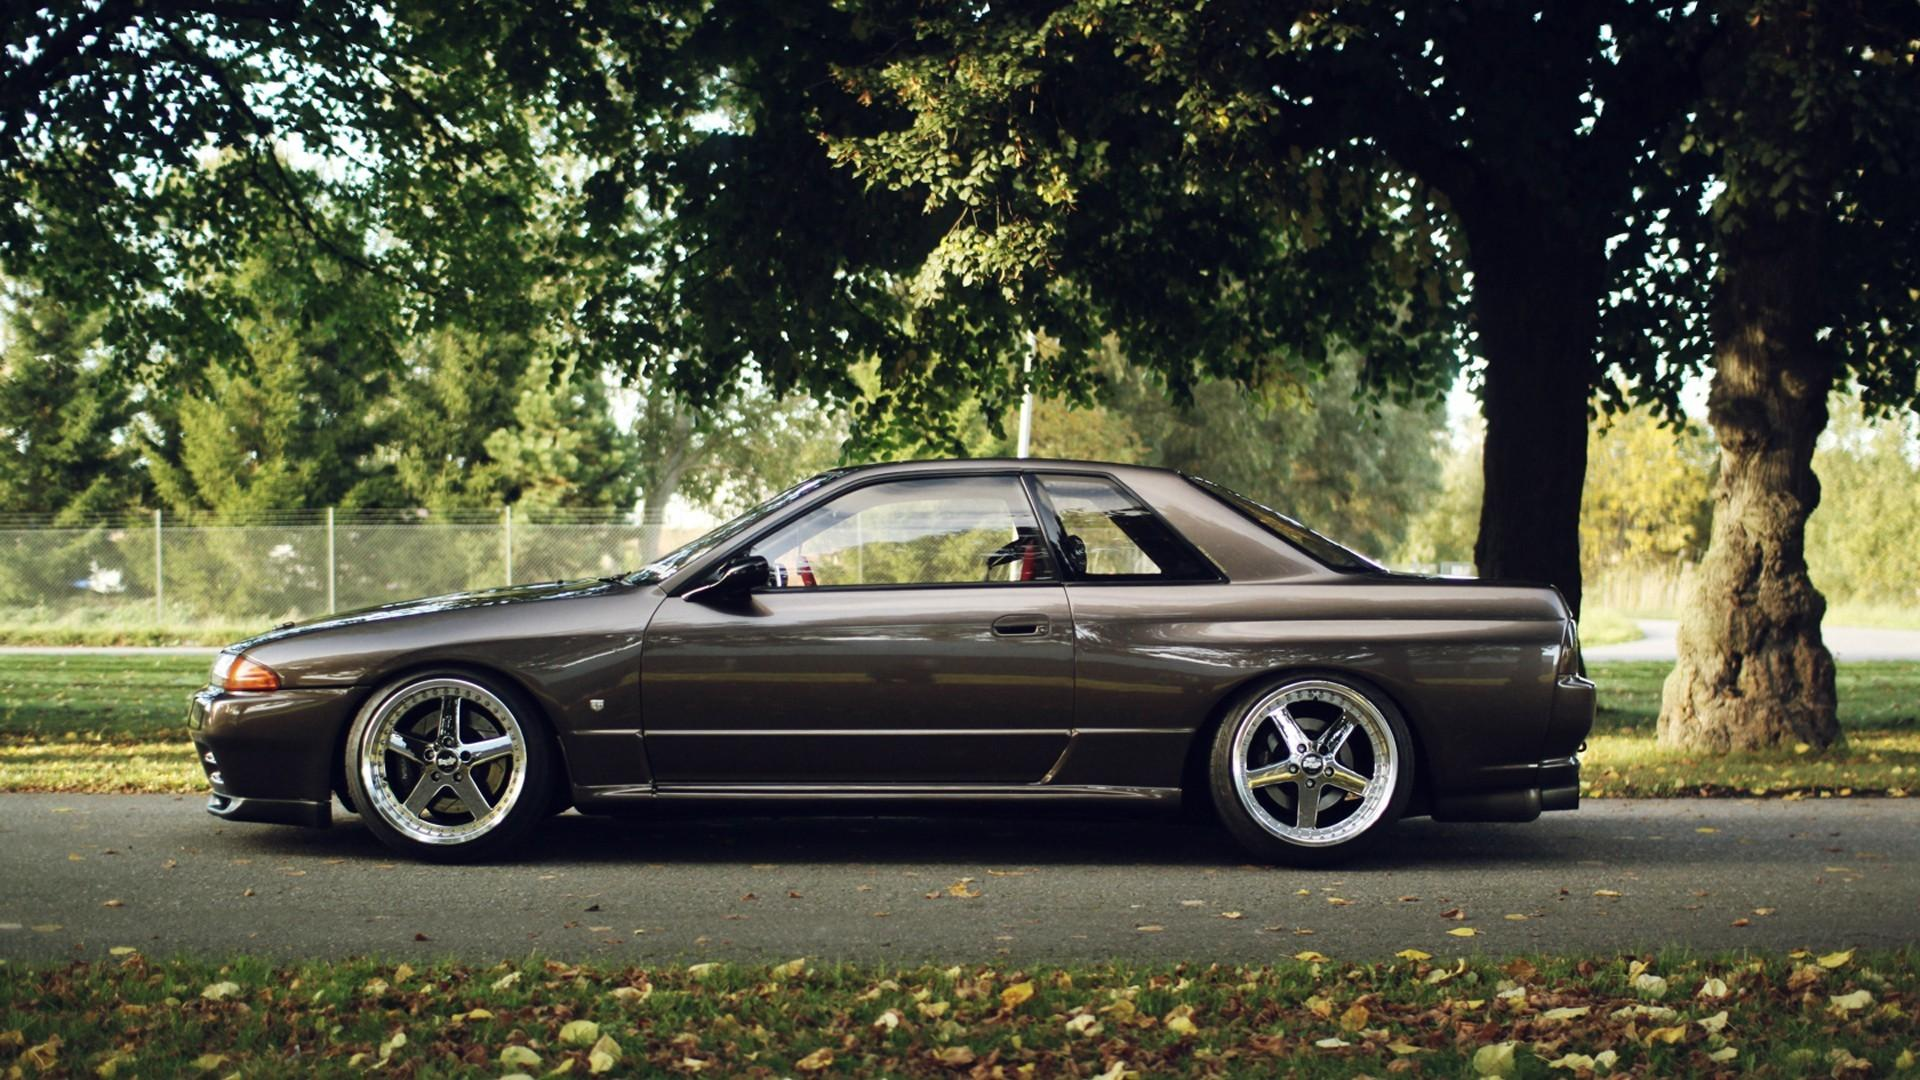 Nissan Skyline R32 Wallpaper 1920x1080